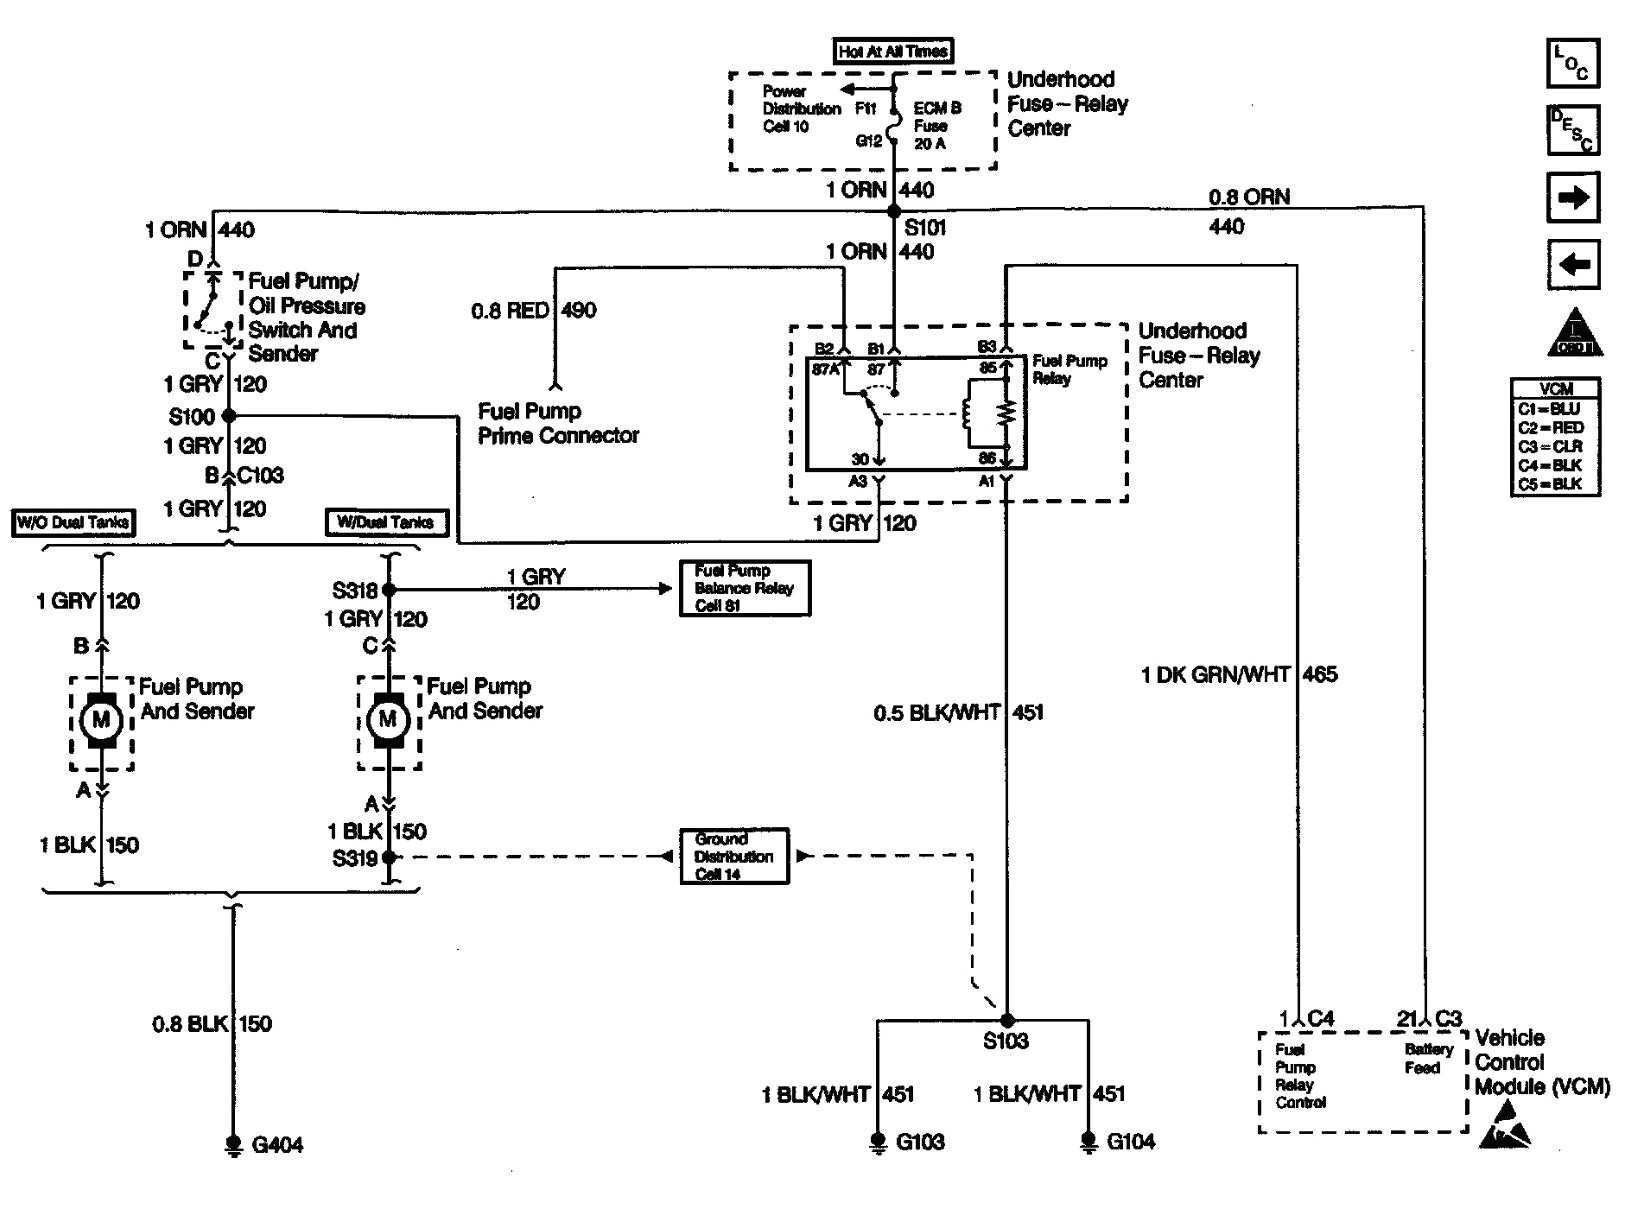 New 2004 Dodge Ram 1500 Ignition Wiring Diagram #diagram #diagramsample  #diagramtemplate #wiringdiagram #diagramchart #worksheet … | Chevy trucks,  Chevy 1500, ChevyPinterest